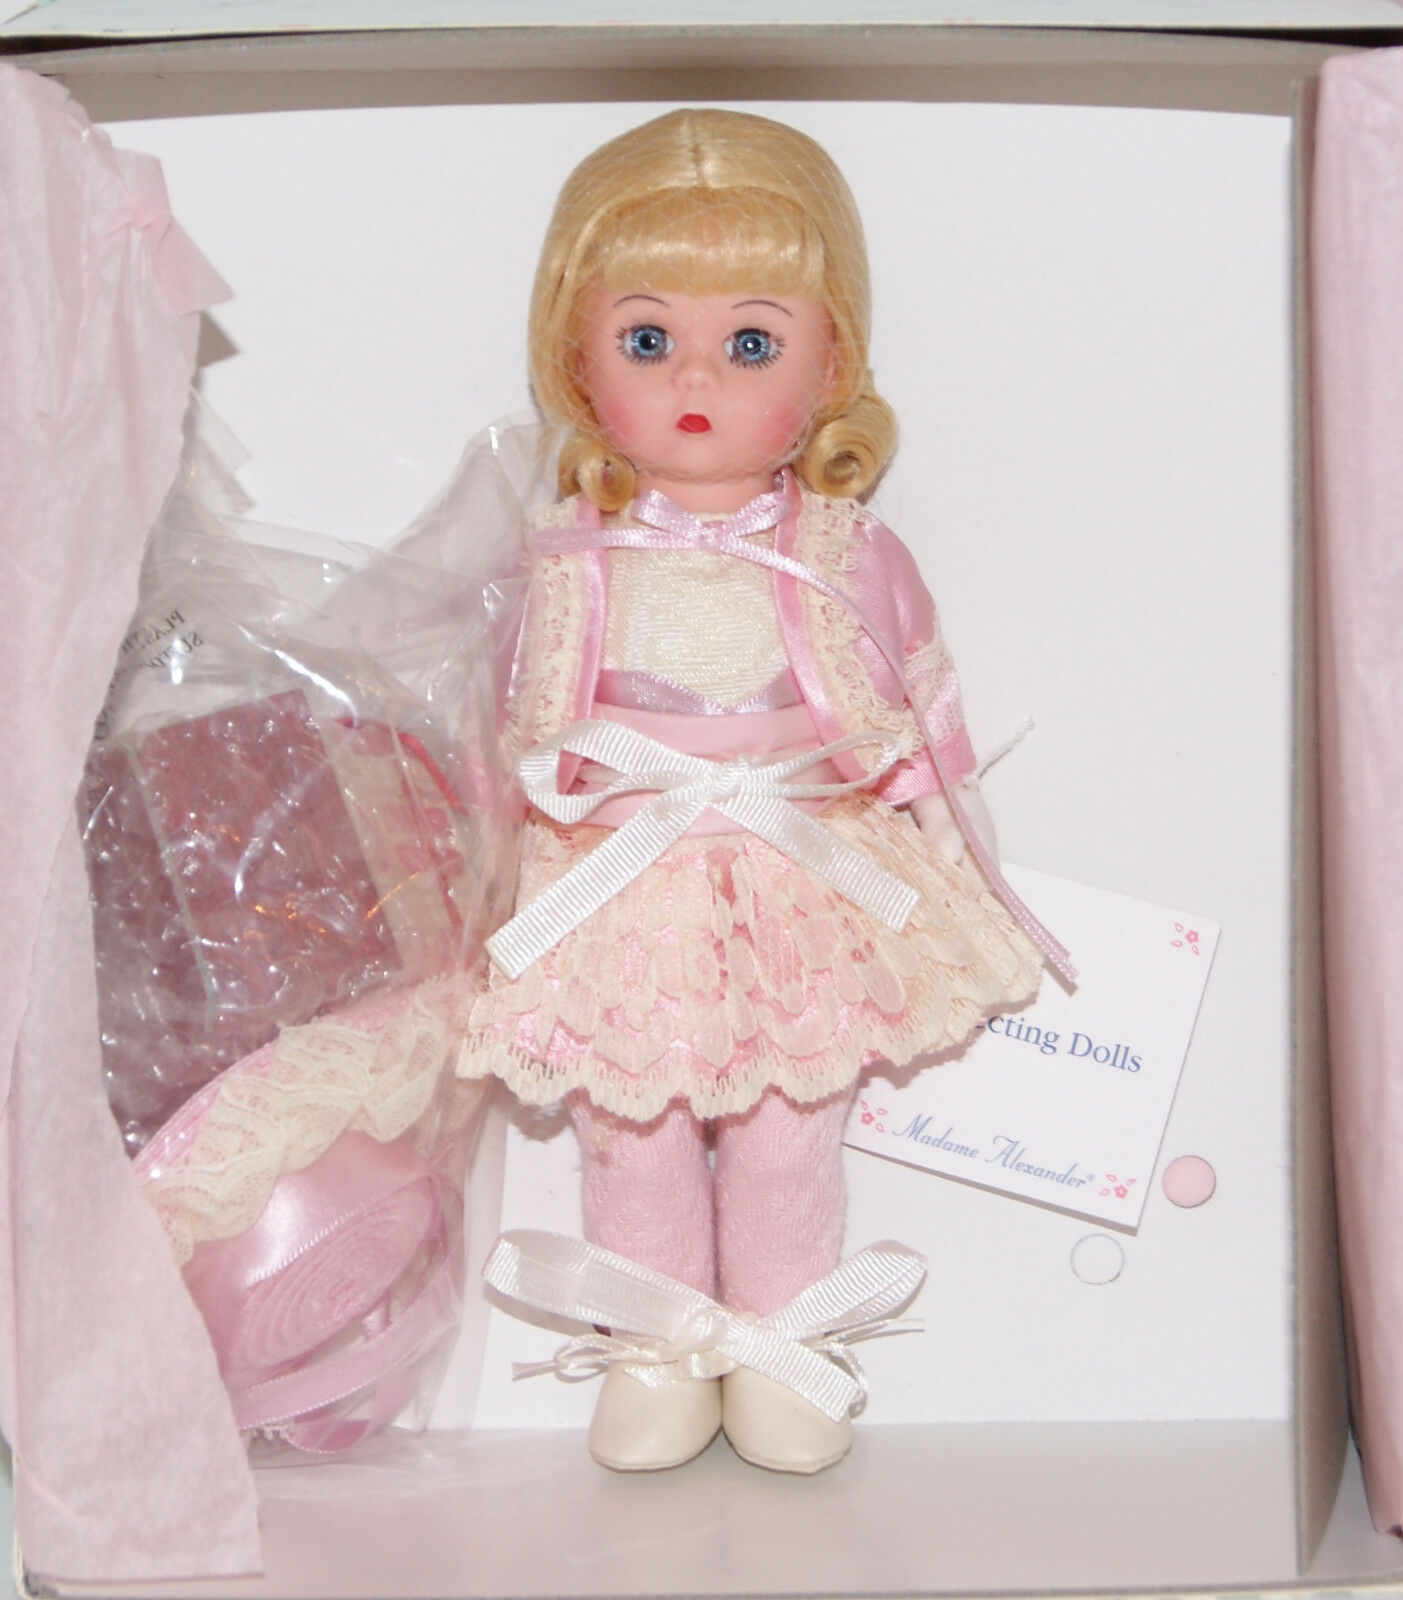 Ritzy Of Available Madame Alexander Doll Company Wendy Collecting Dolls Madame Alexander Dolls Worth Madame Alexander Dolls Mcdonalds baby Madame Alexander Doll